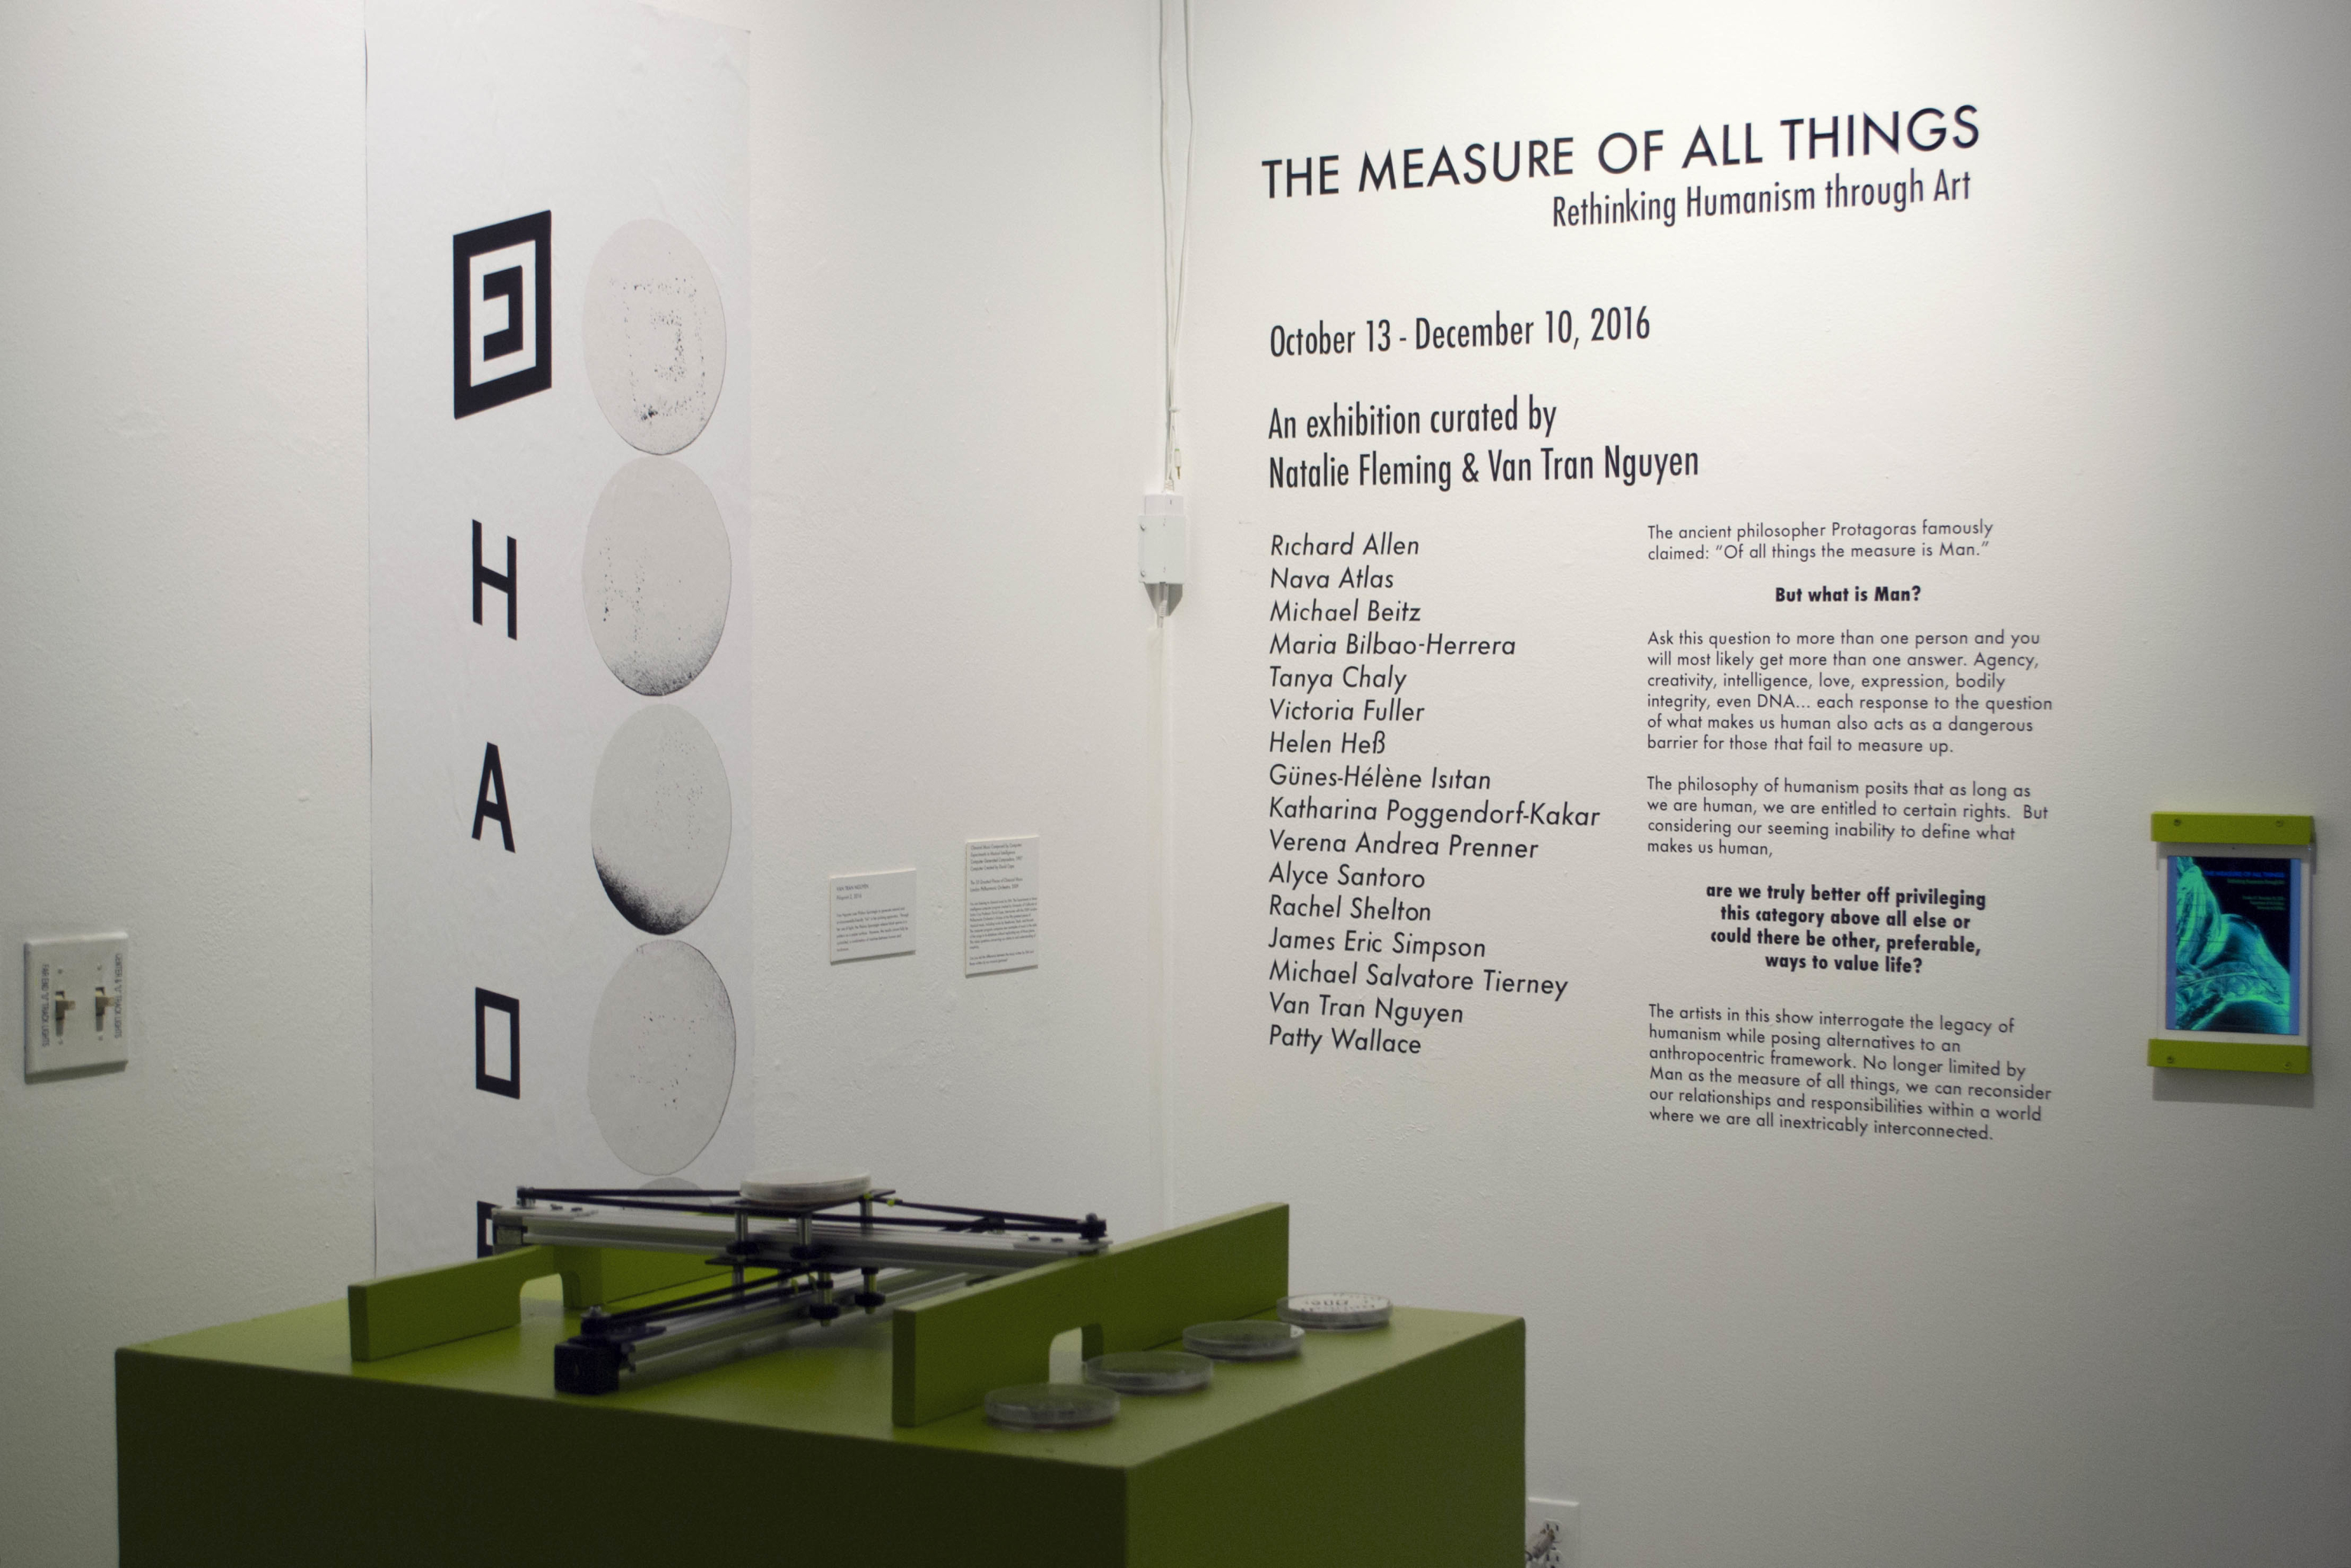 RH.6 THE MEASURE OF ALL THINGS: RETHINKING HUMANISM THROUGH ART